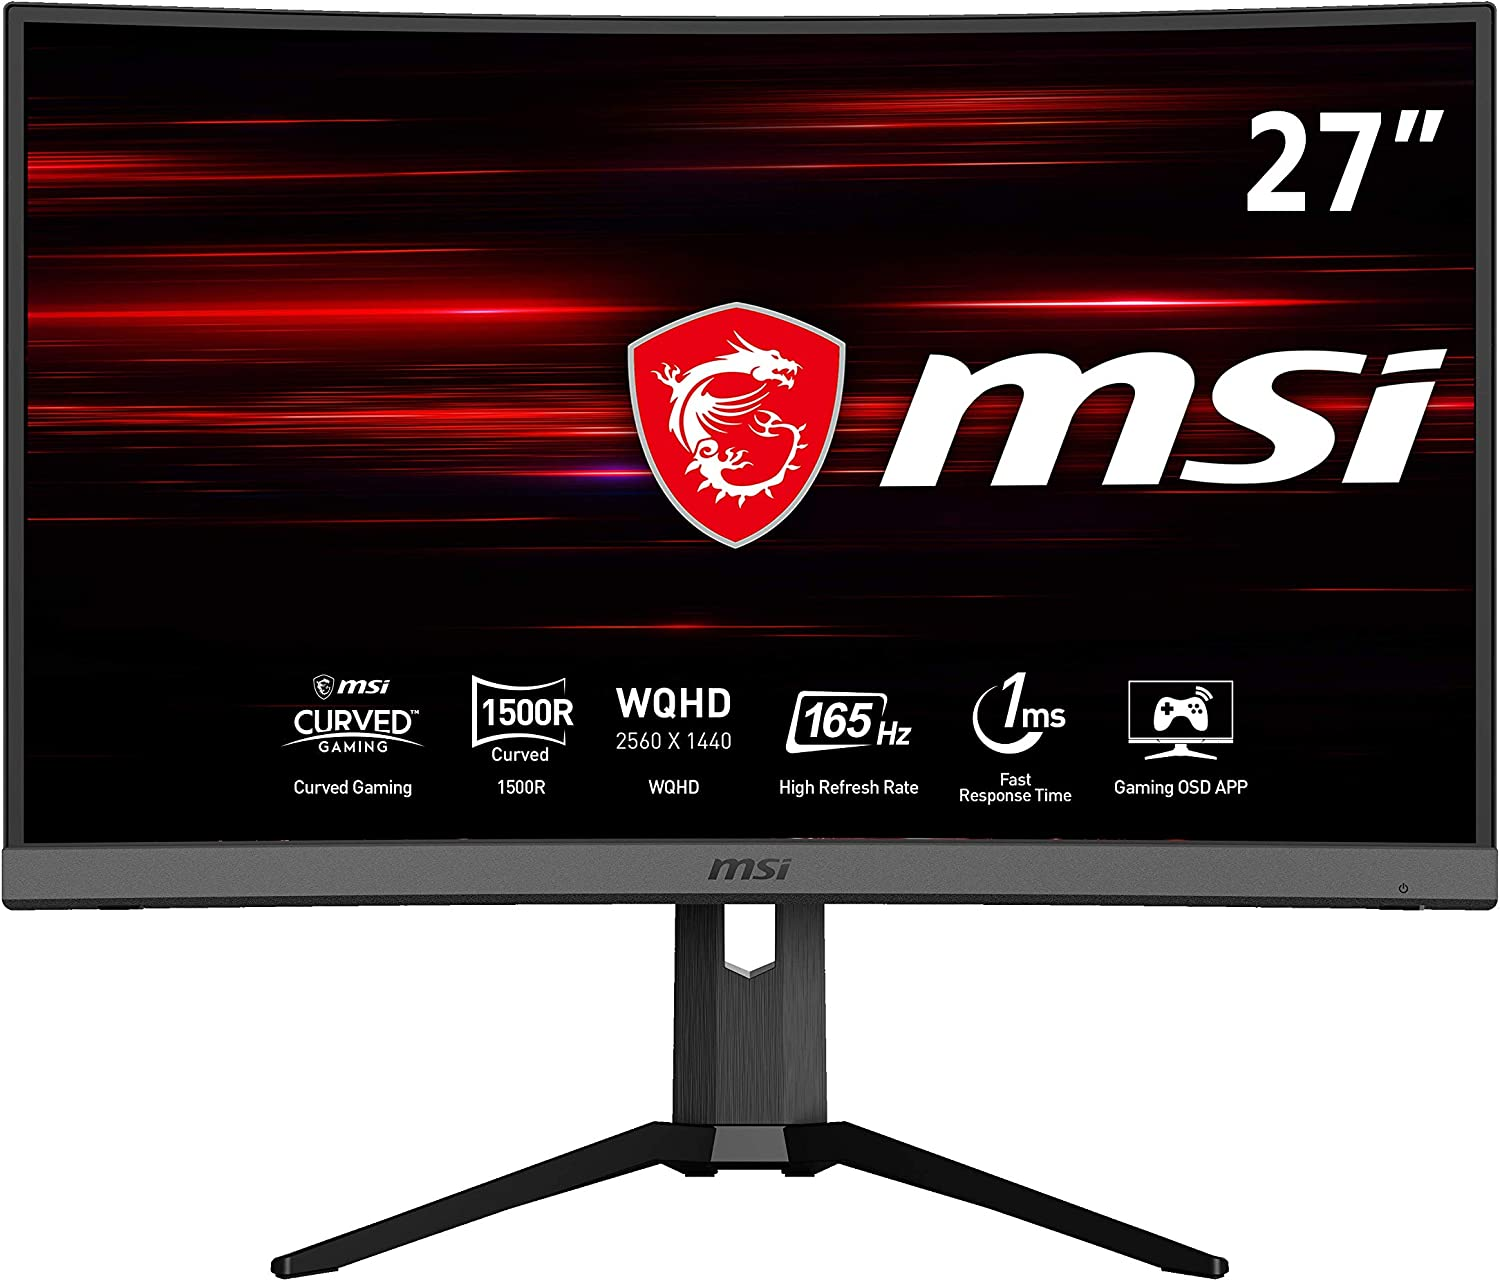 "MSI Optix MAG272CQR - Monitor Gaming Curvo de 27"" LED WQHD 165Hz (2560 x 1440p, ratio 16:9, Panel VA, pantalla curva 1500R, 1 ms respuesta, brillo 300 nits, Anti-glare) negro"